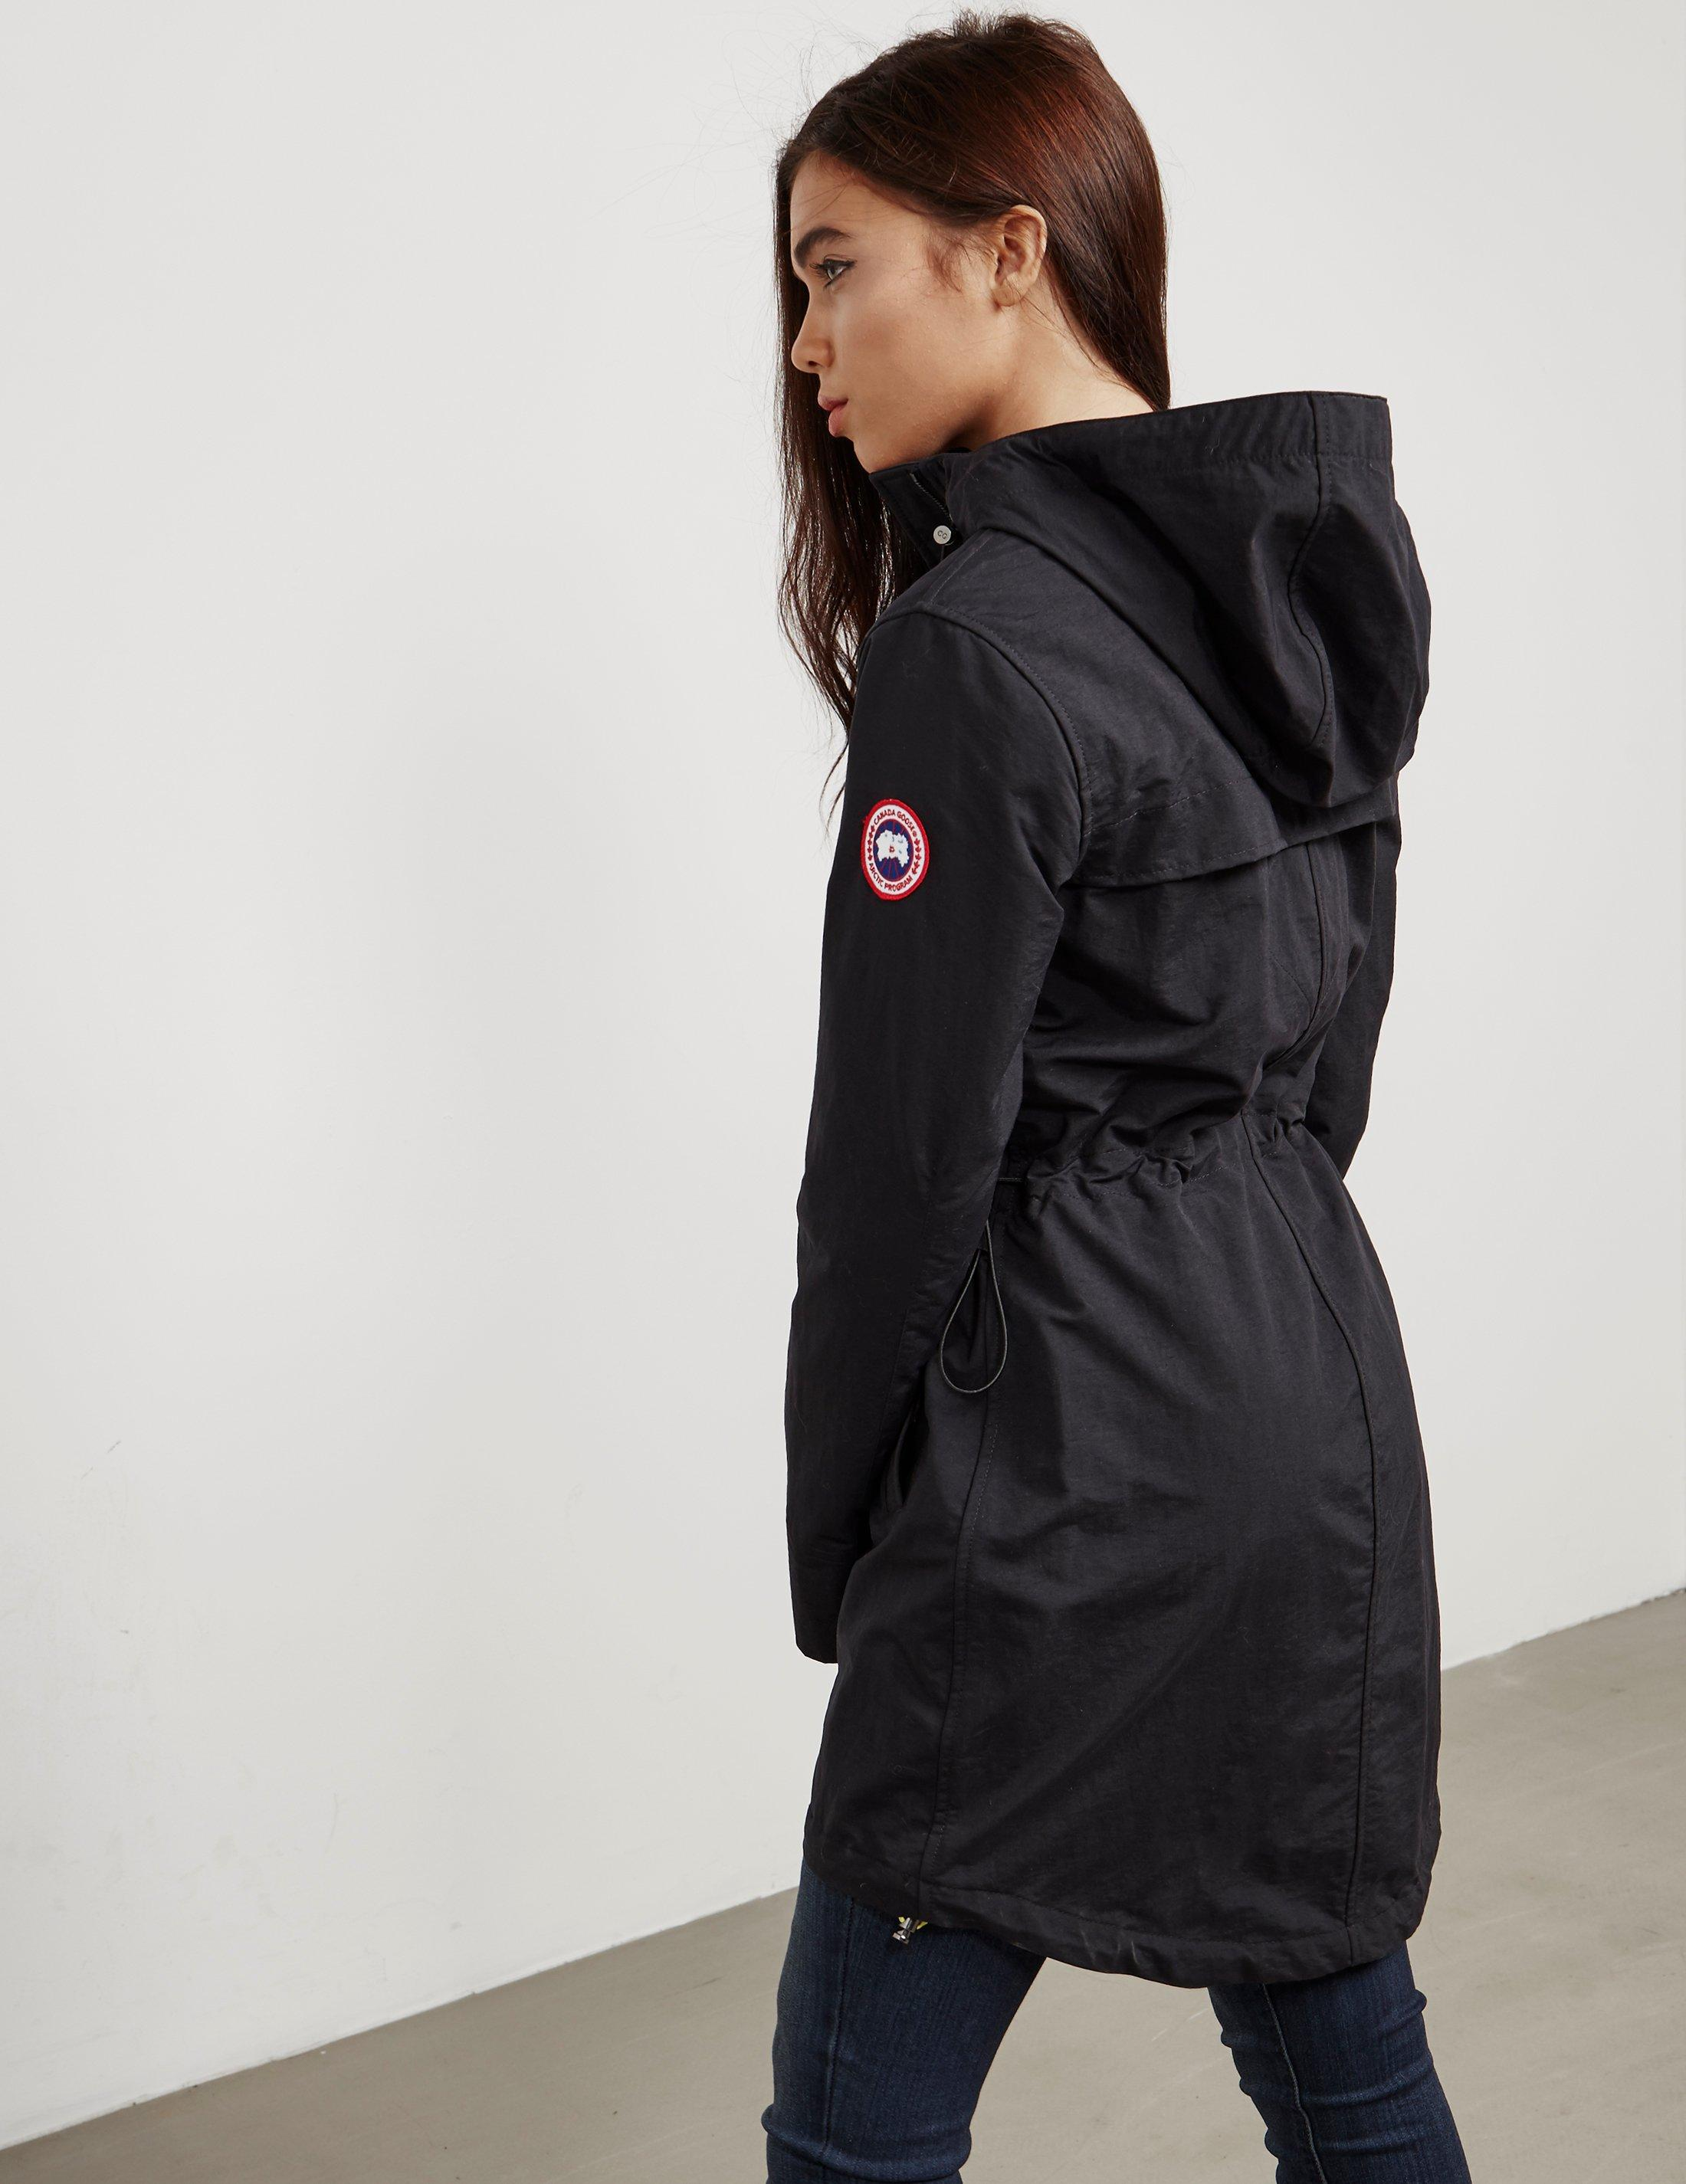 2897887ac36 Canada Goose Brossard Jacket in Black - Lyst